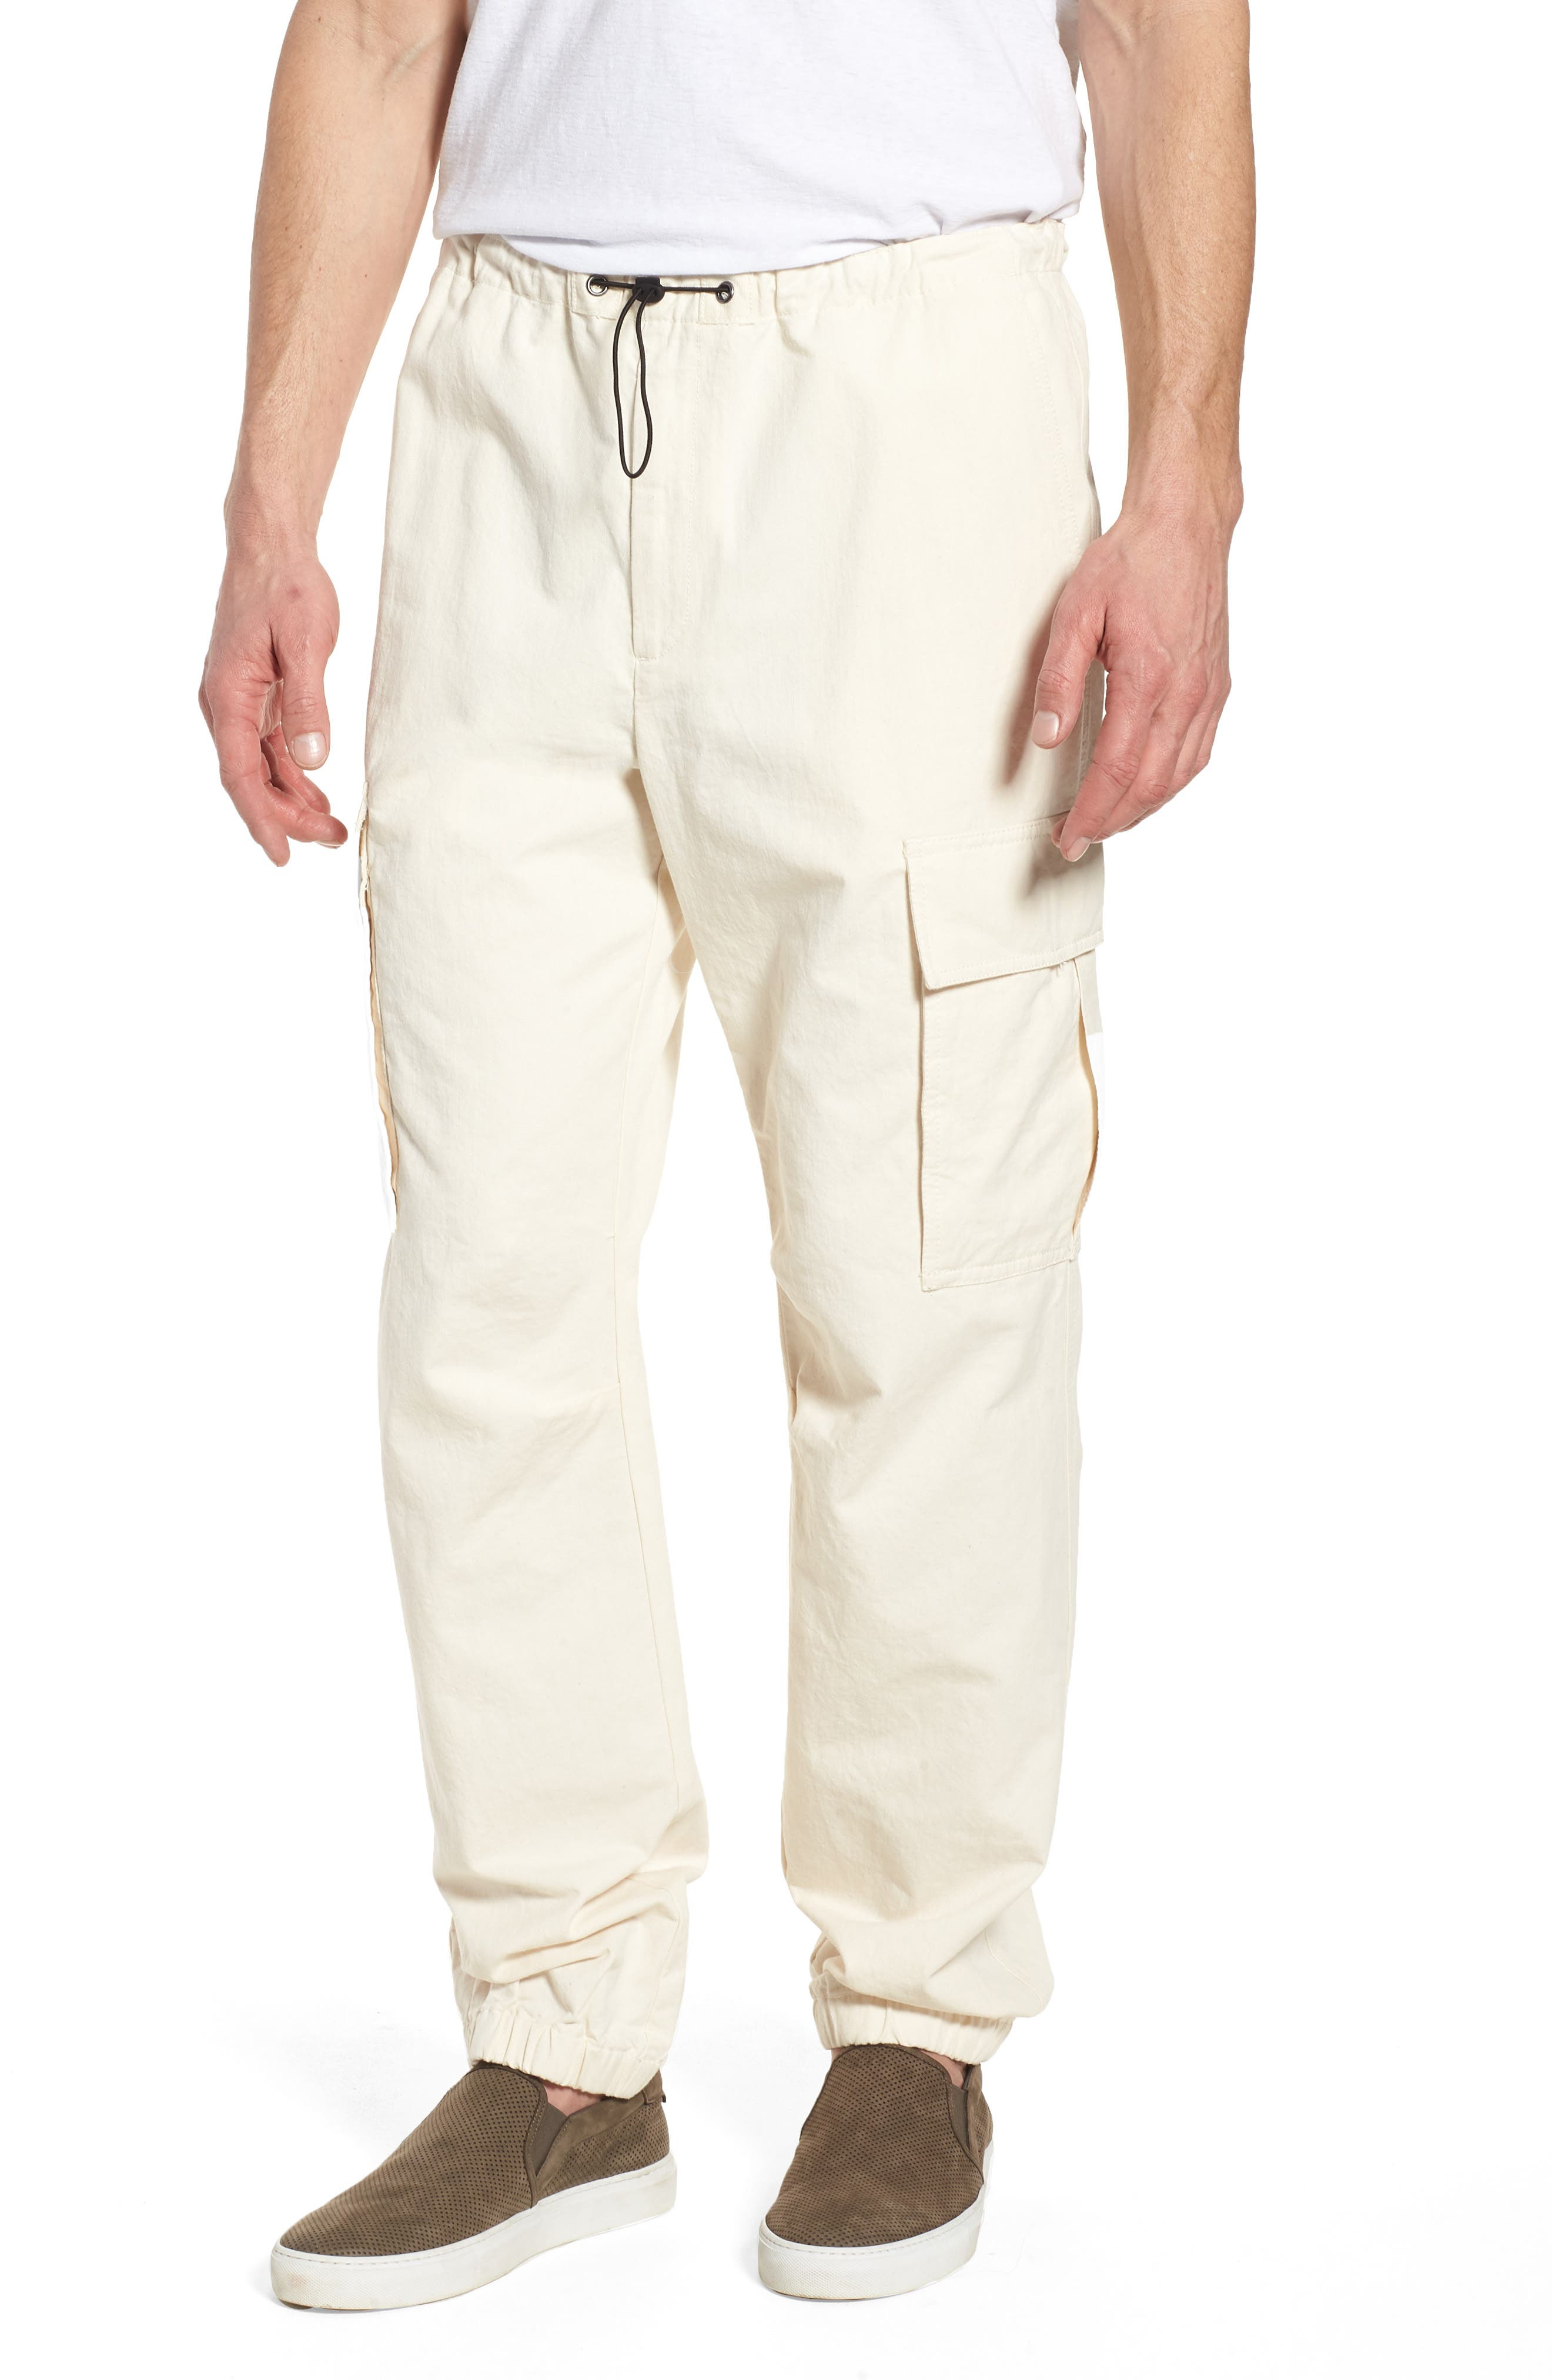 James Perse Cargo Pants, Ivory